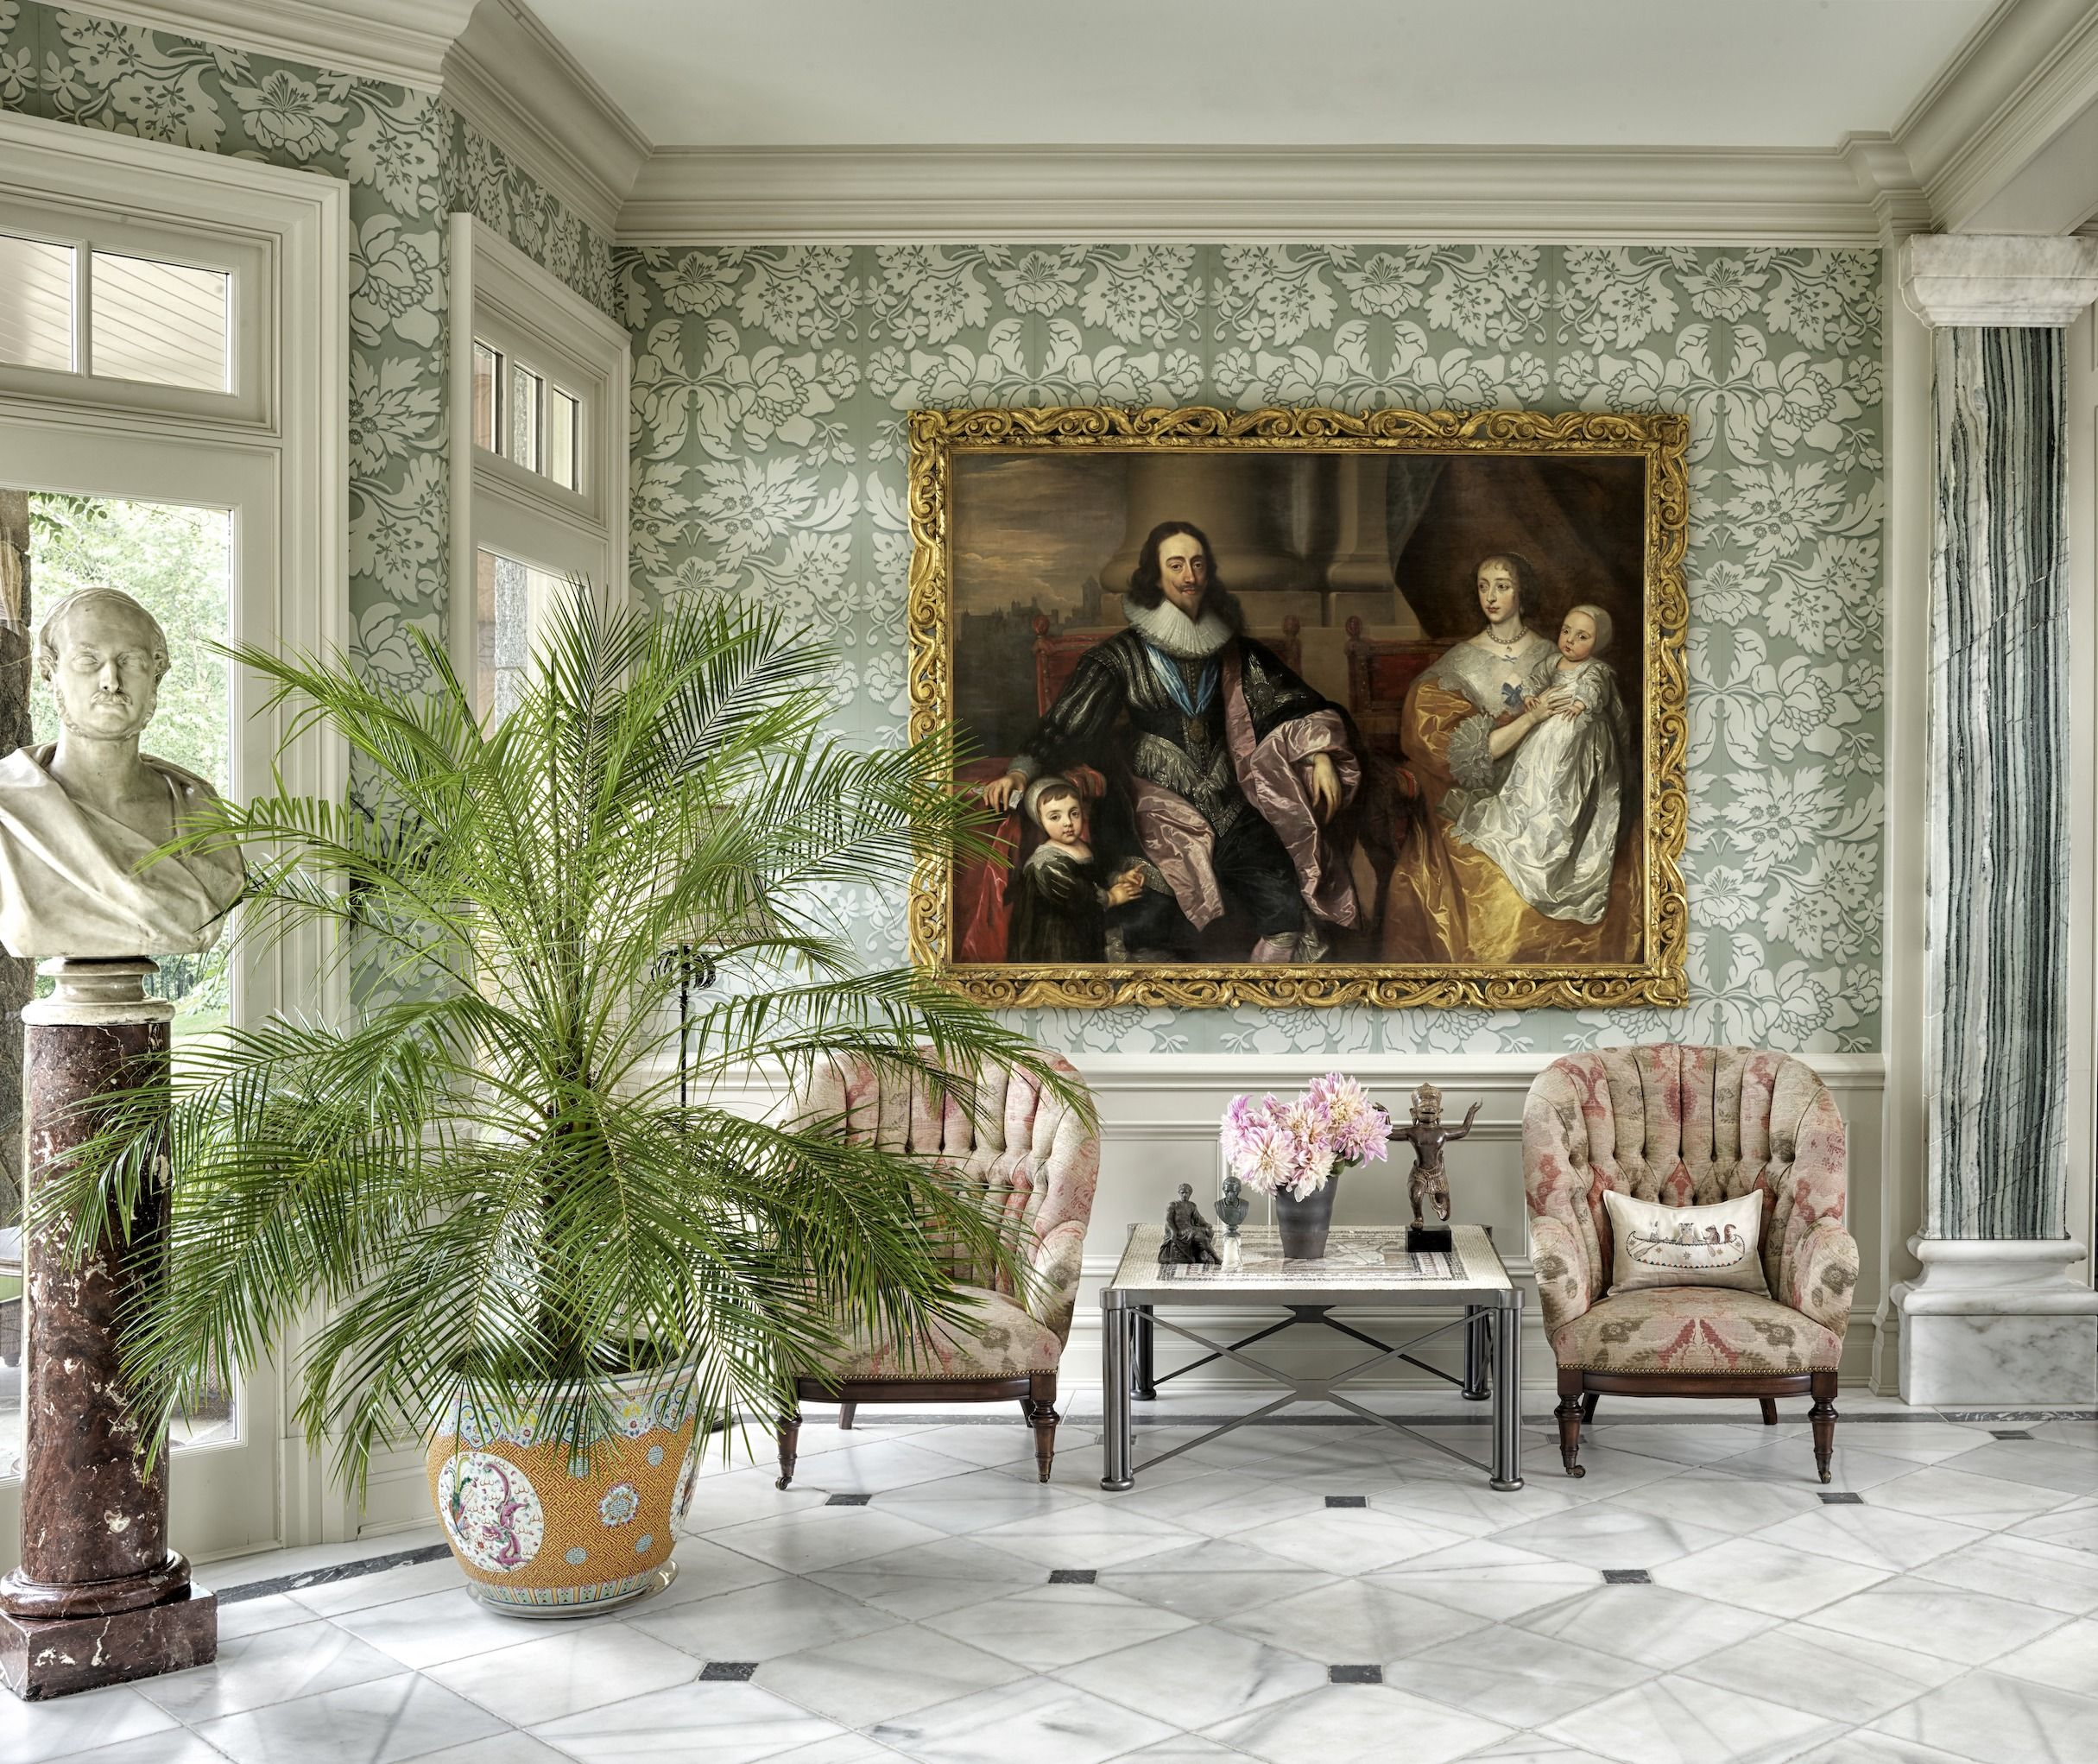 Tour a Dramatic Hearst Family Estate in New York's Hudson Valley